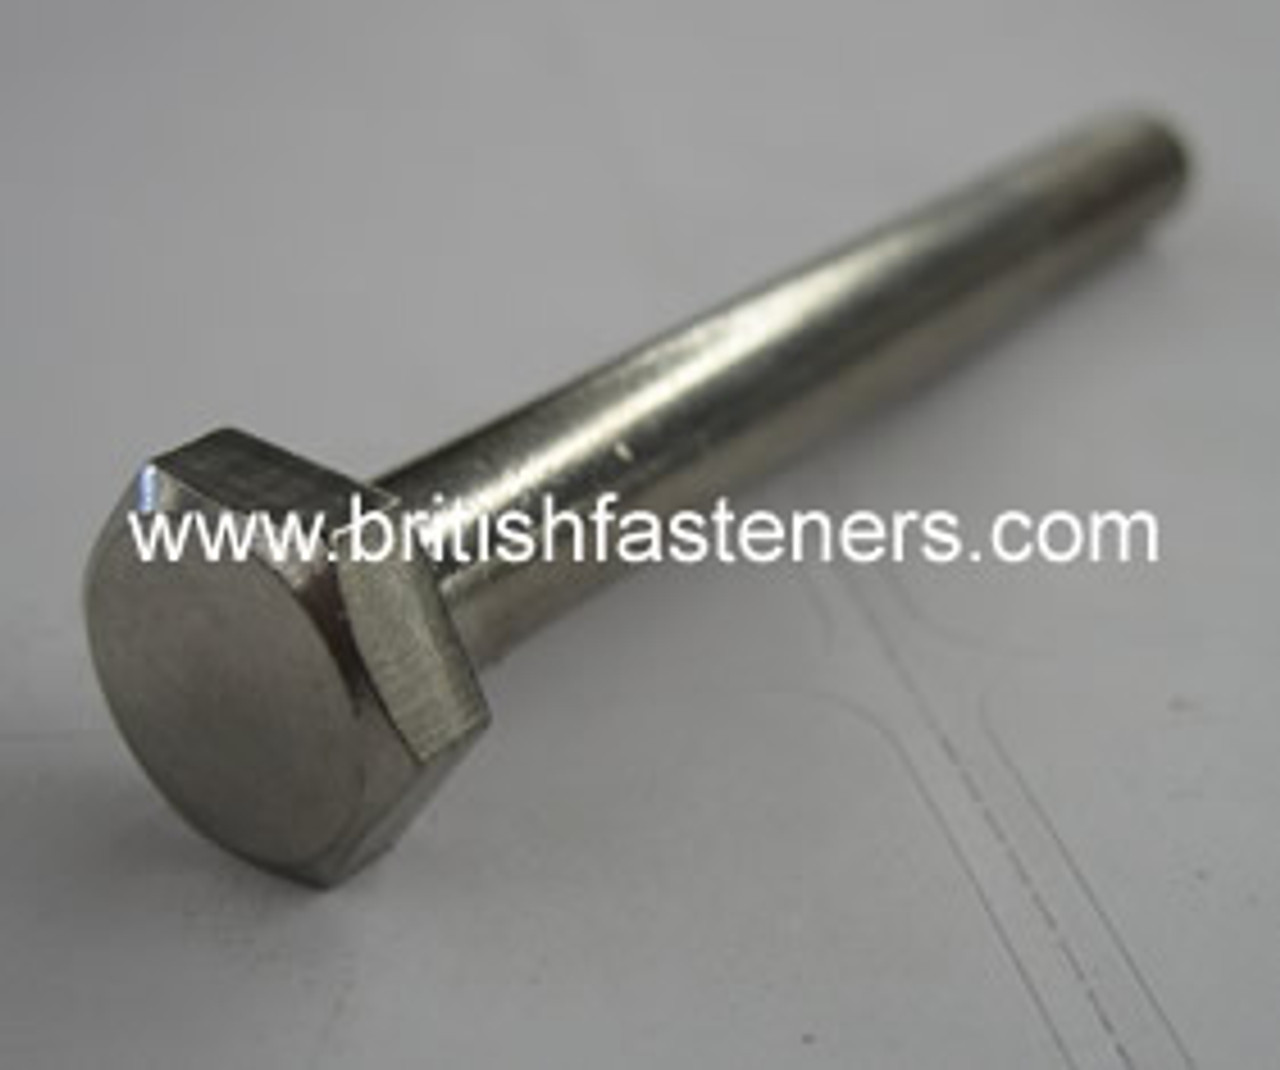 "Stainless Bolt BSC Hex 5/16 x 1 3/4"" - (6430)"